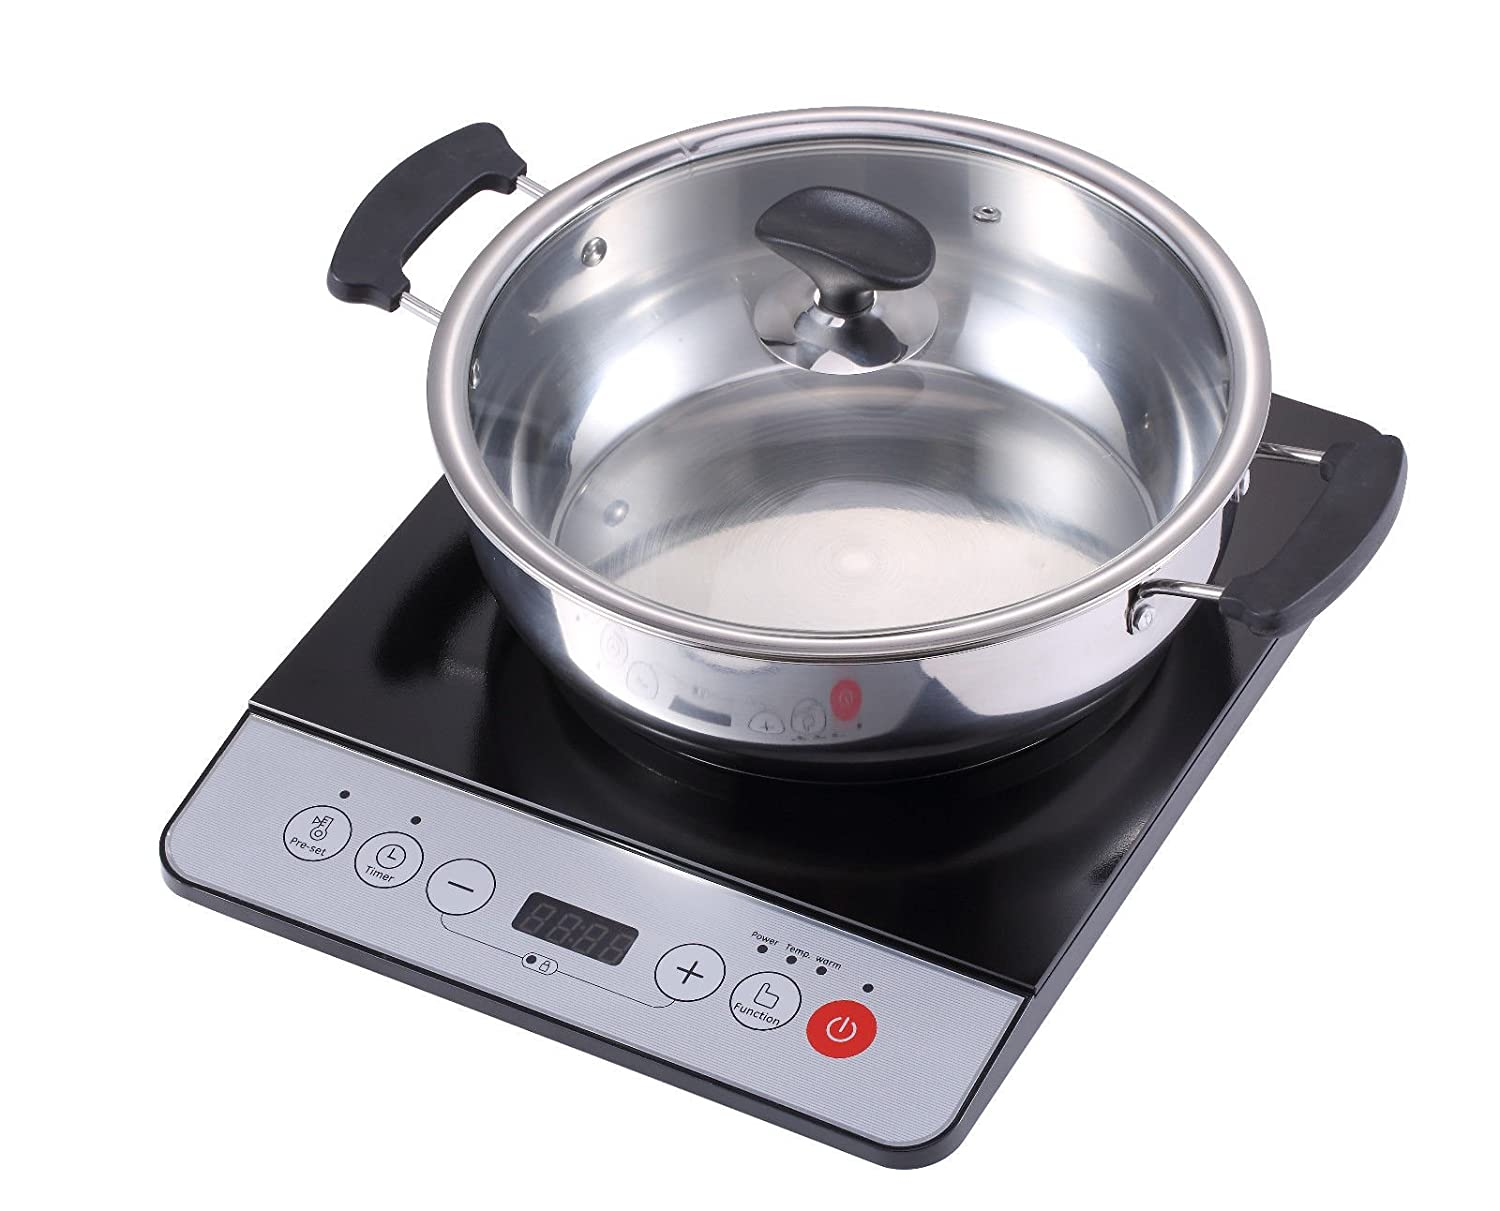 Midea 1500W Induction cooktop cooker with stainless steel pot